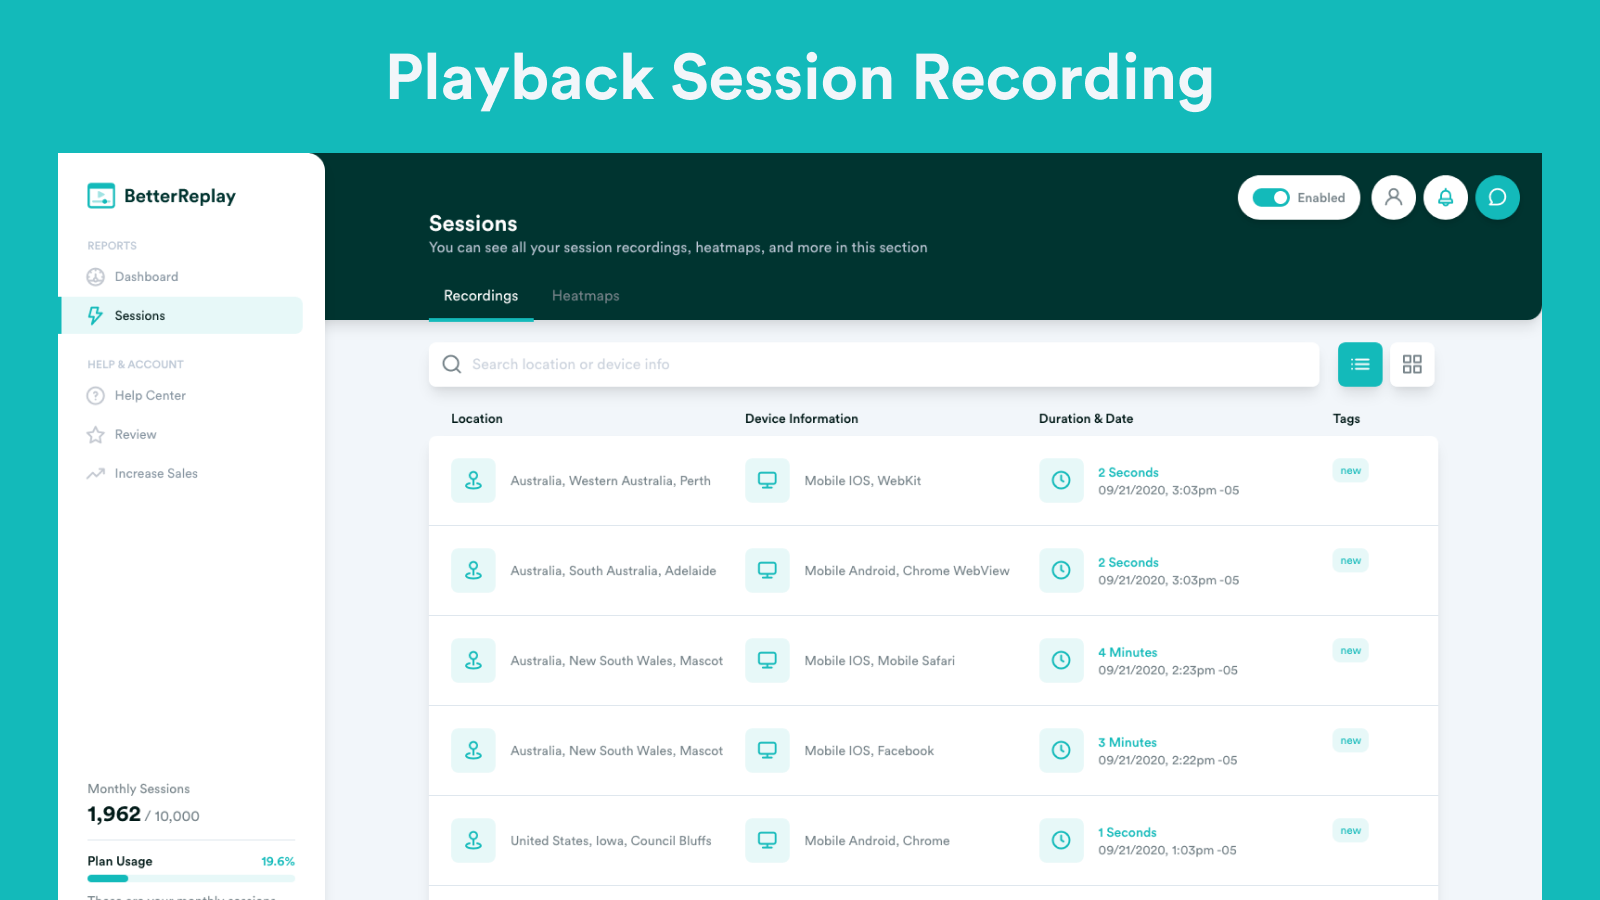 Playback Session Recordings